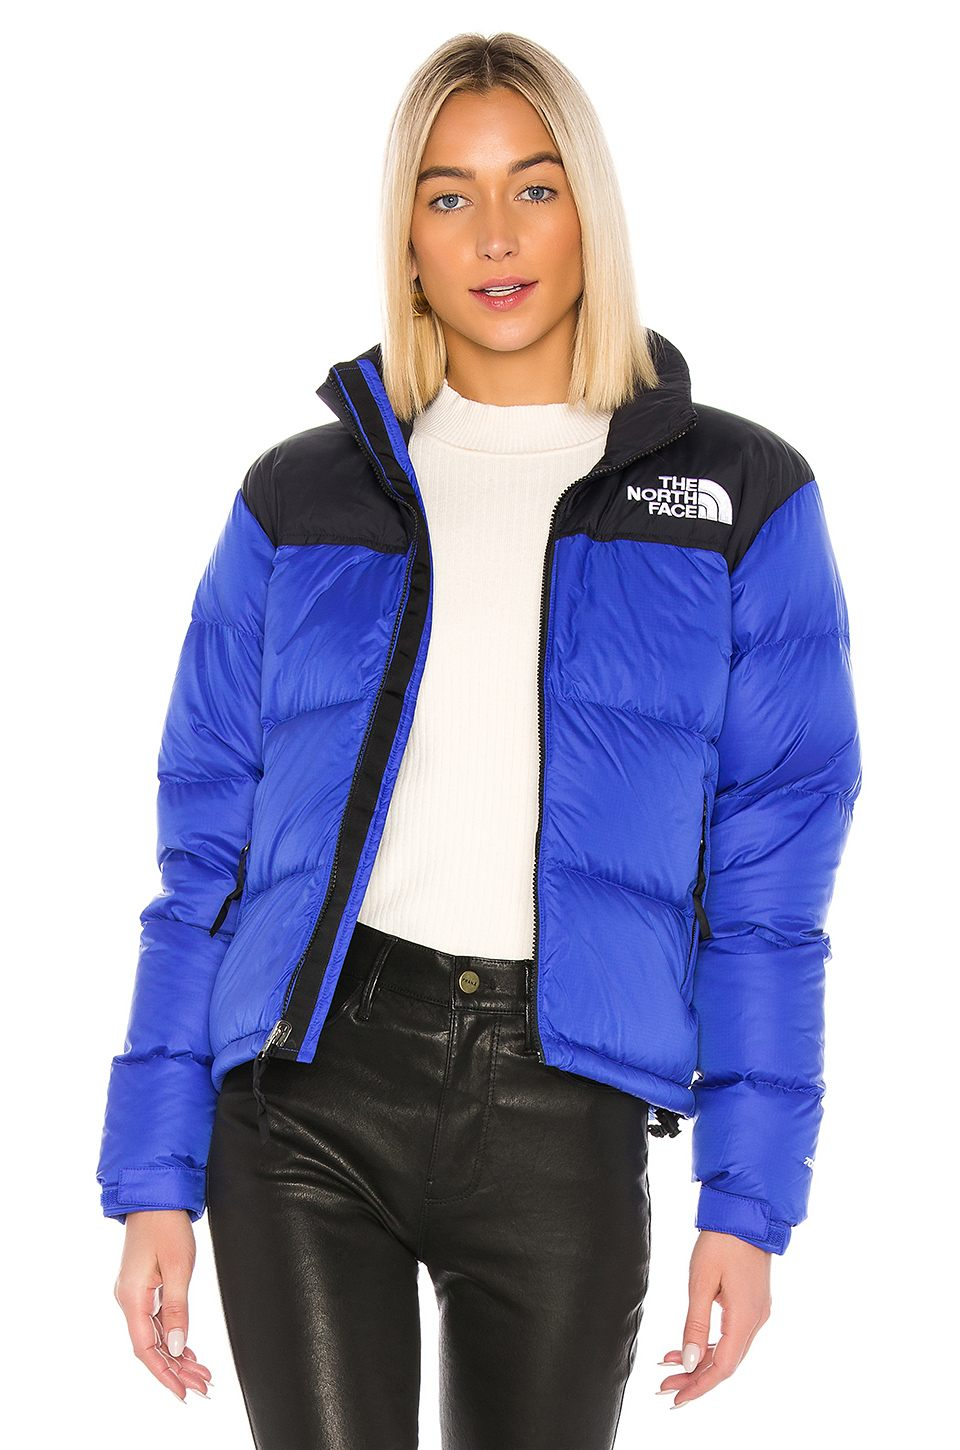 1996 Retro Nuptse Jacket by The North Face, available on revolve.com for $249 Kendall Jenner Outerwear Exact Product